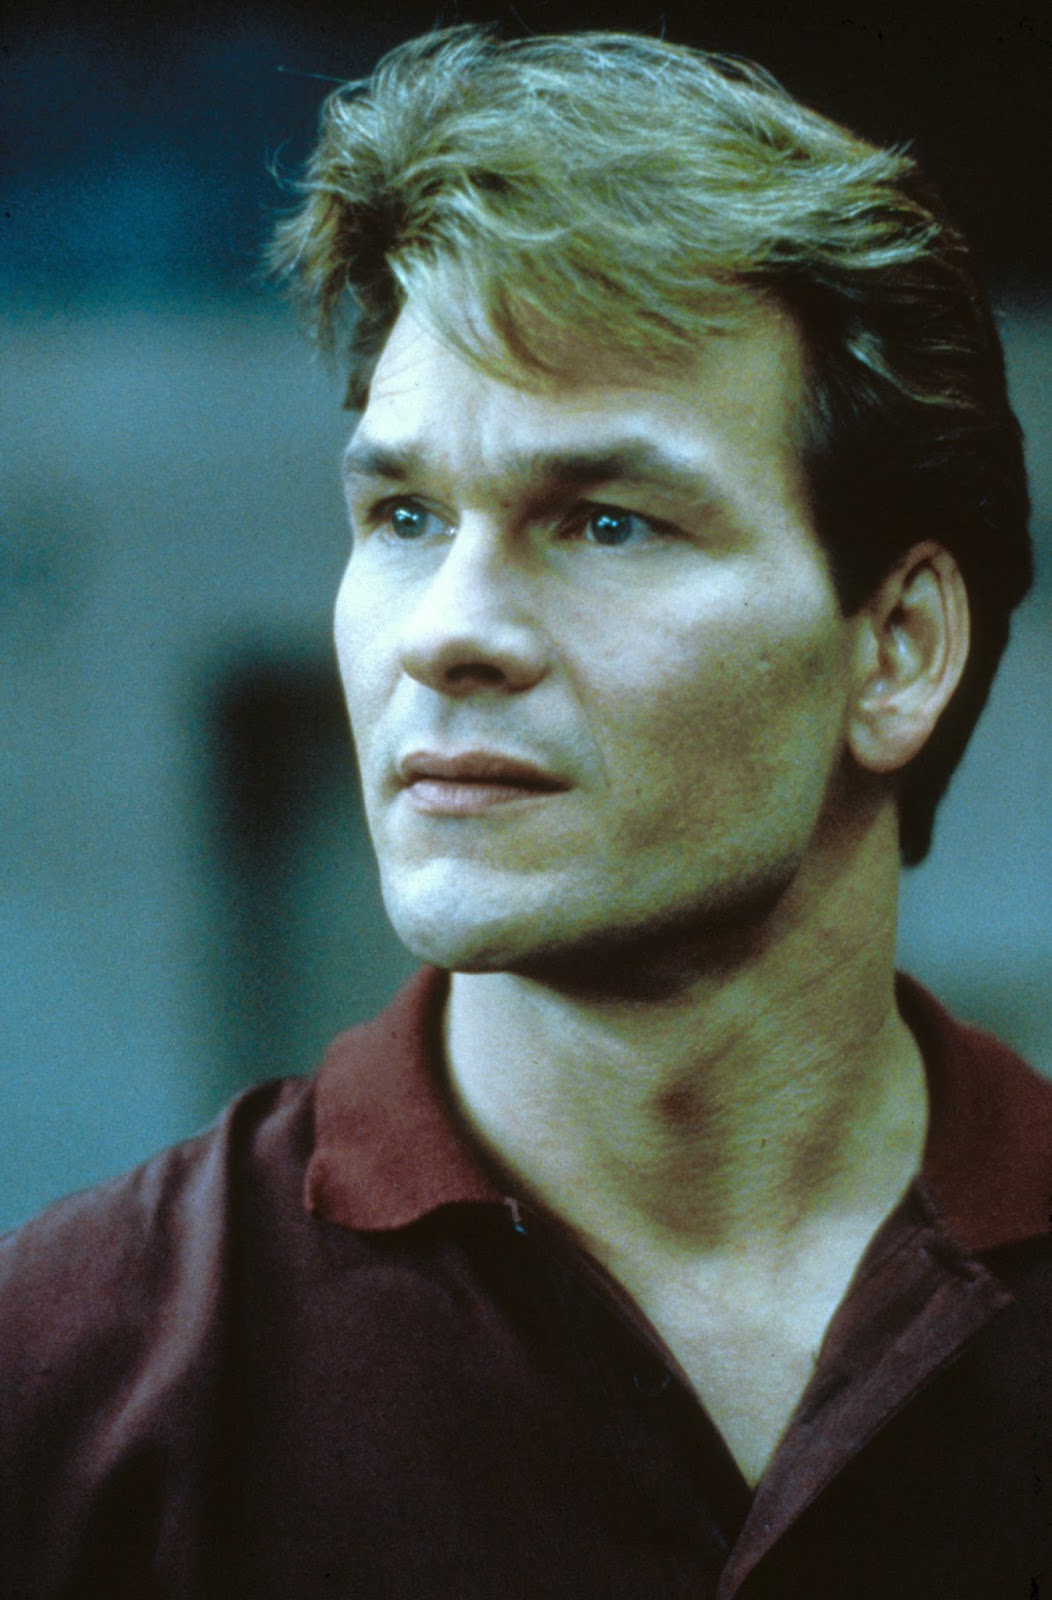 Patrick Swayze as the ghost of Sam Wheat.